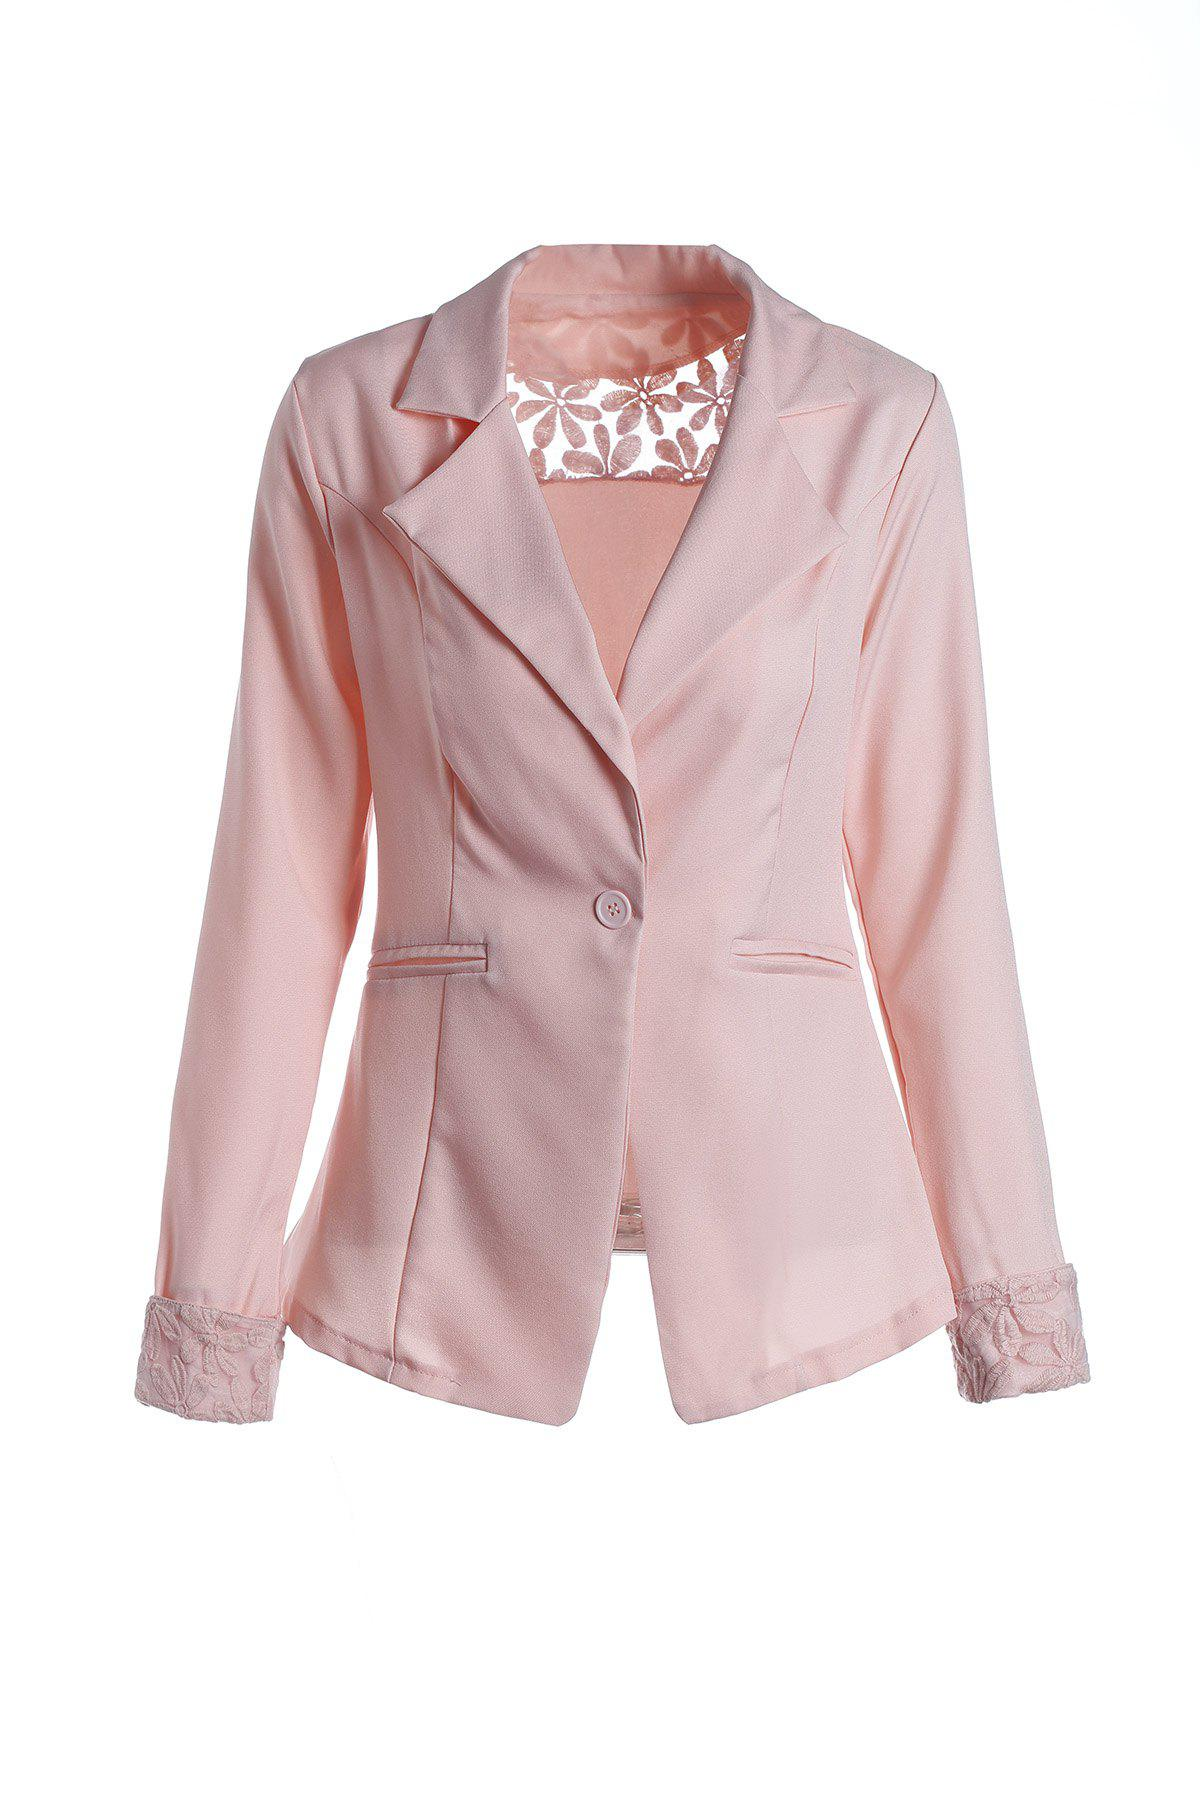 Dresslily FR Stylish Lapel Long Sleeve Hollow Out Slimming Women's Blazer